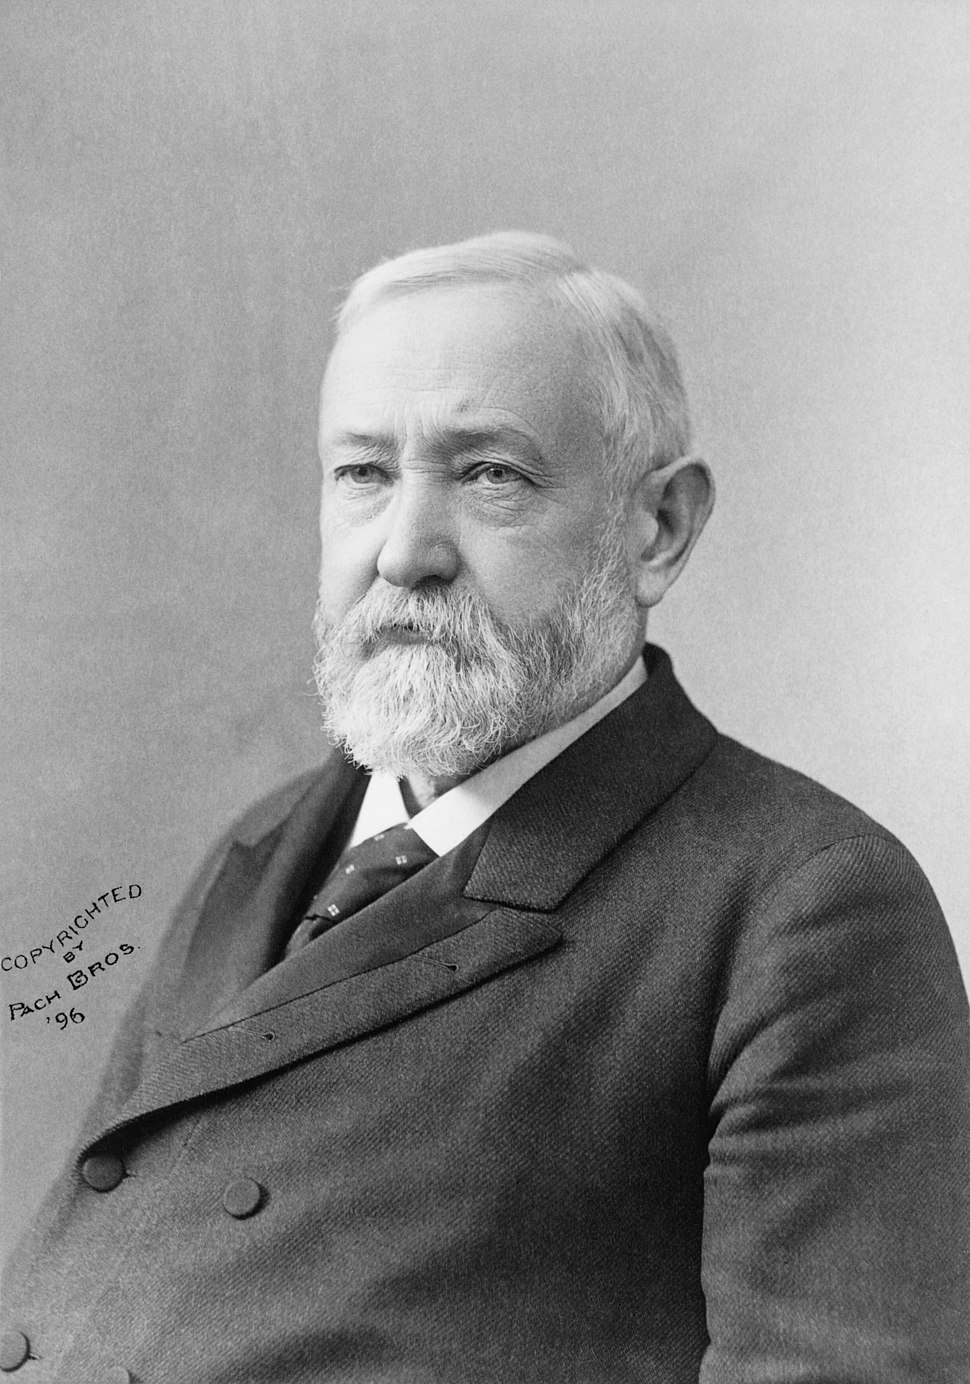 Pach Brothers - Benjamin Harrison